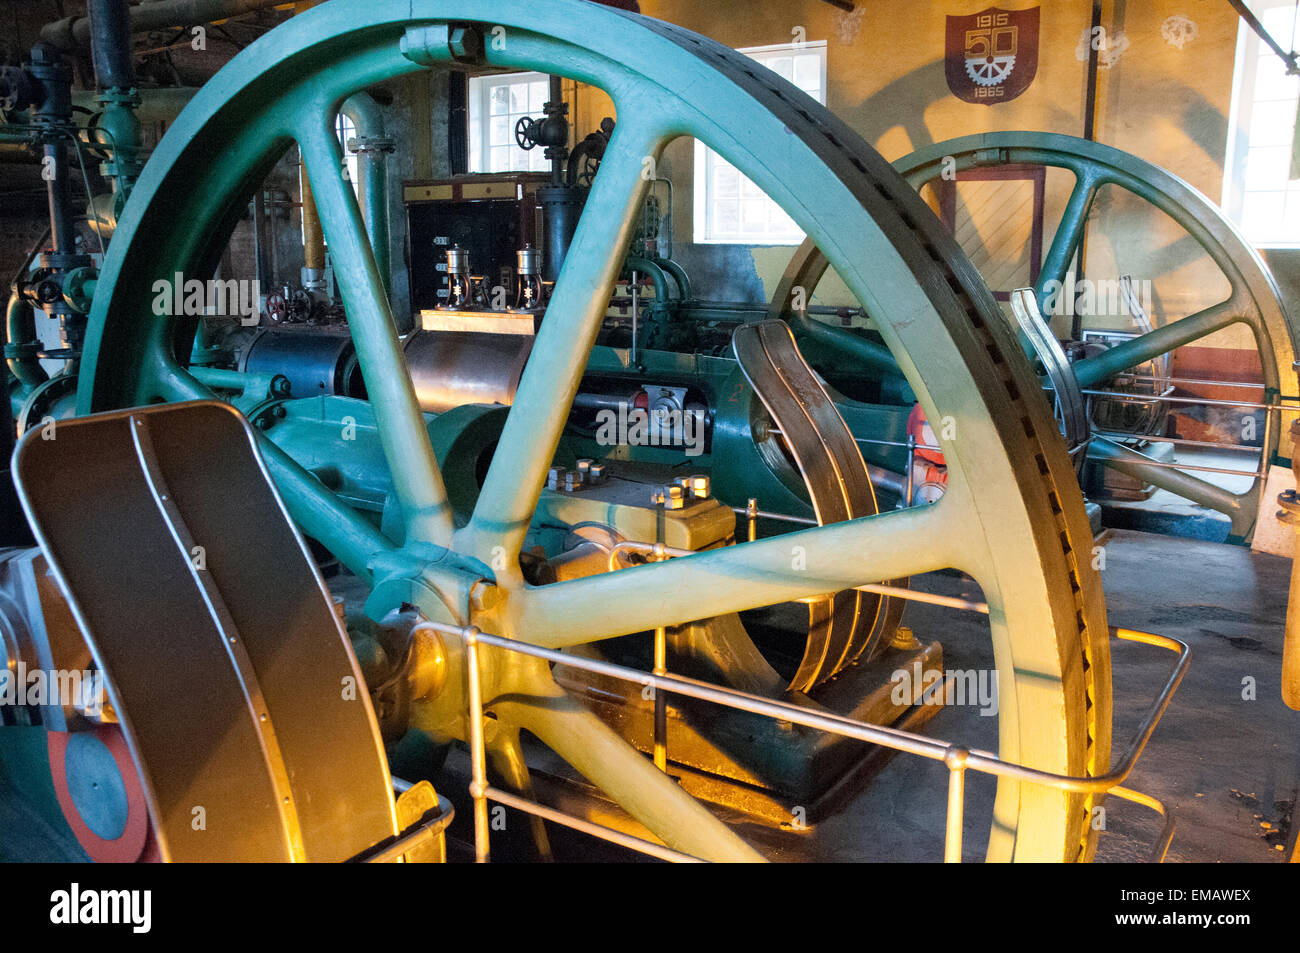 Antique British refrigeration machinery preserved at The Singular Patagonia Hotel, Puerto Bories, Patagonia, Chile - Stock Image